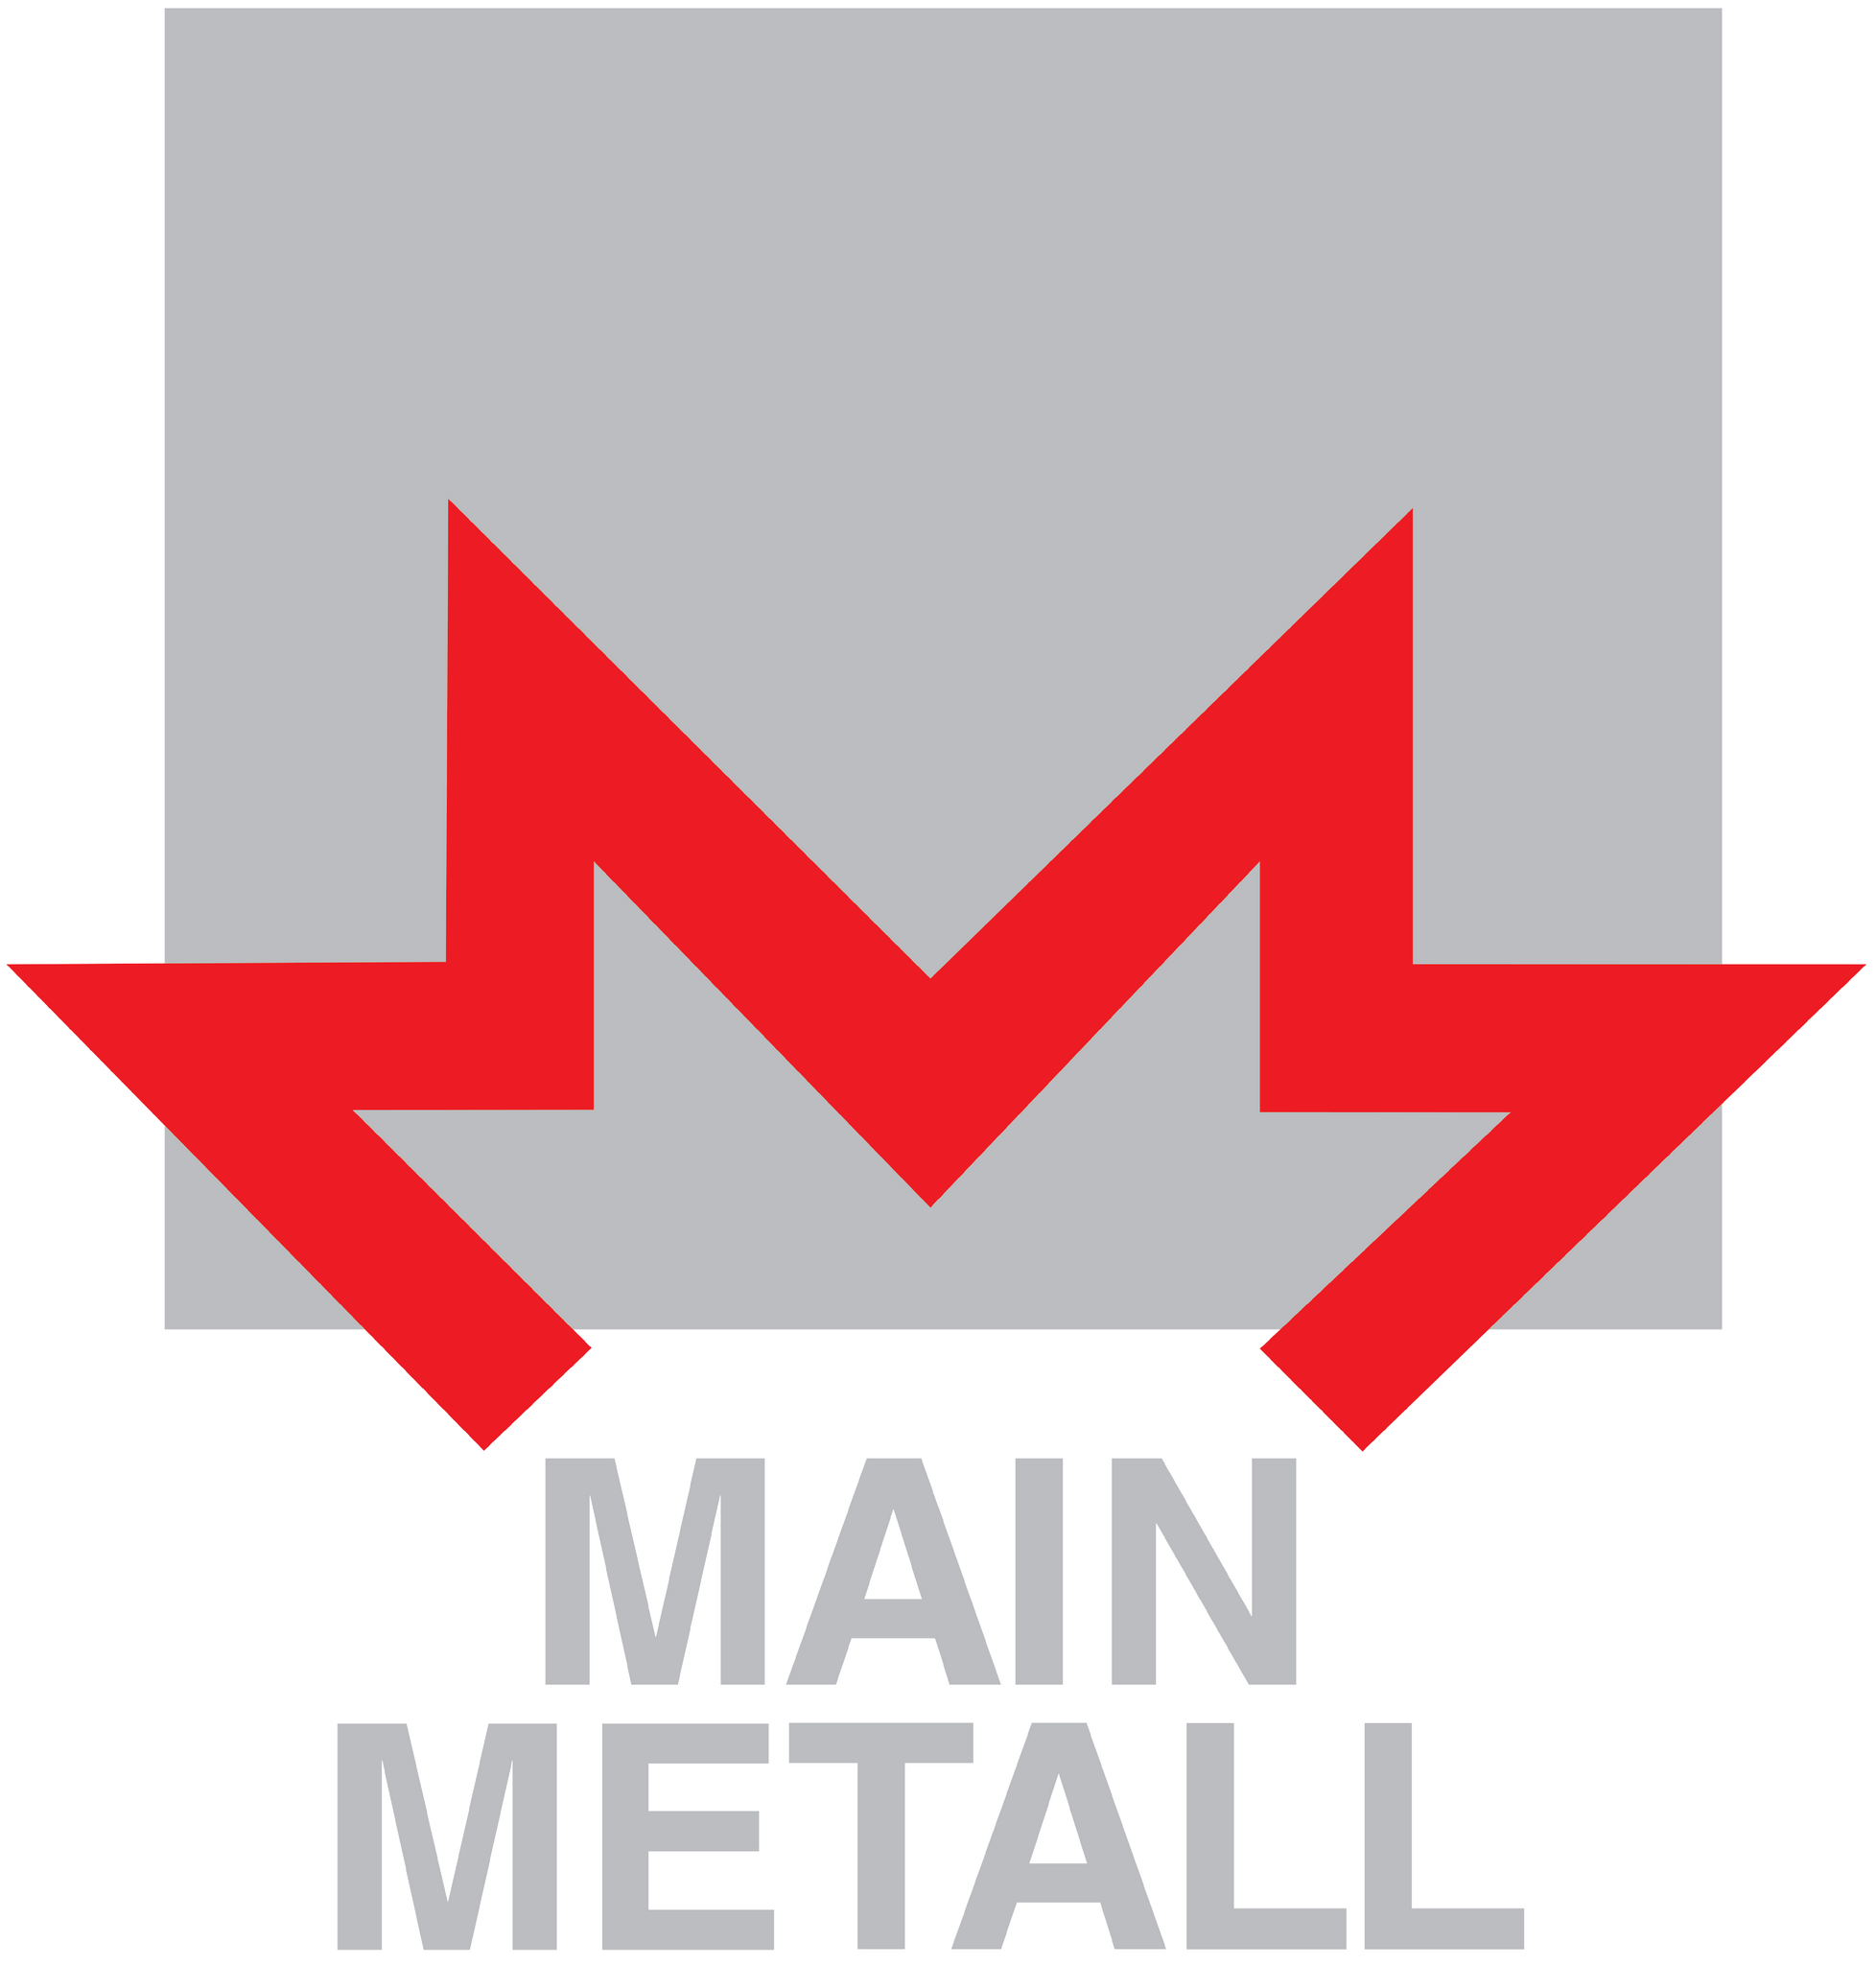 Main-Metall Tribologie GmbH